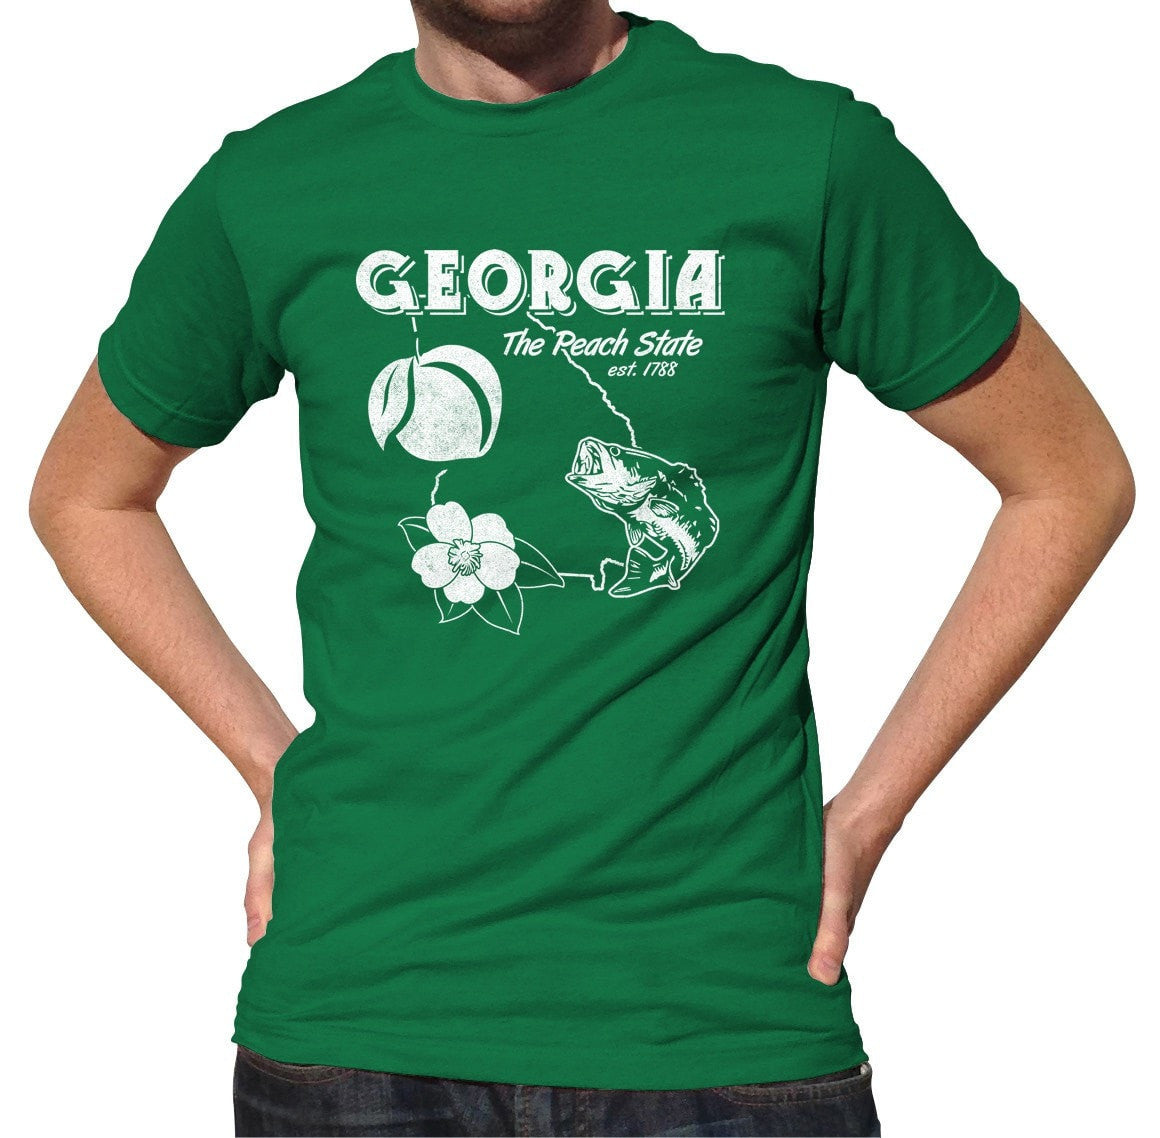 Men's Georgia T-Shirt